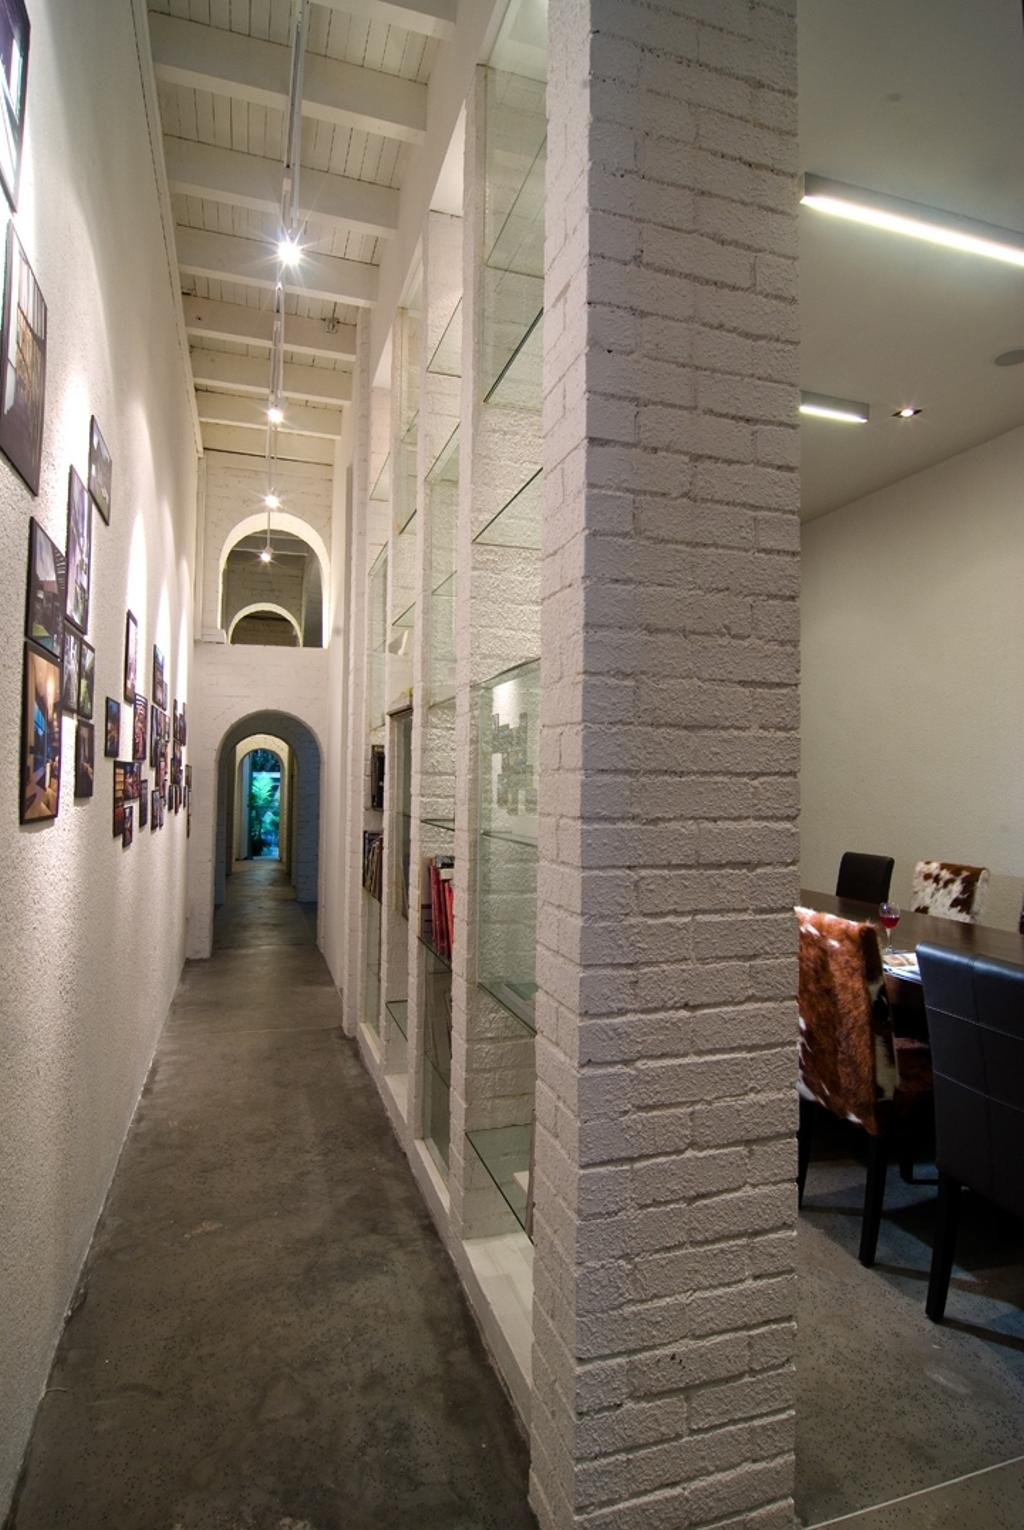 Sophia Office, Commercial, Architect, Aamer Architects, Contemporary, White Beam Ceiling, Beam Ceiling, White Ceiling, Concrete Floor, Wall Art, Wall Portrait, Portrait, Brick Wall, Arched Doors, Open Doors, Couch, Furniture, Corridor